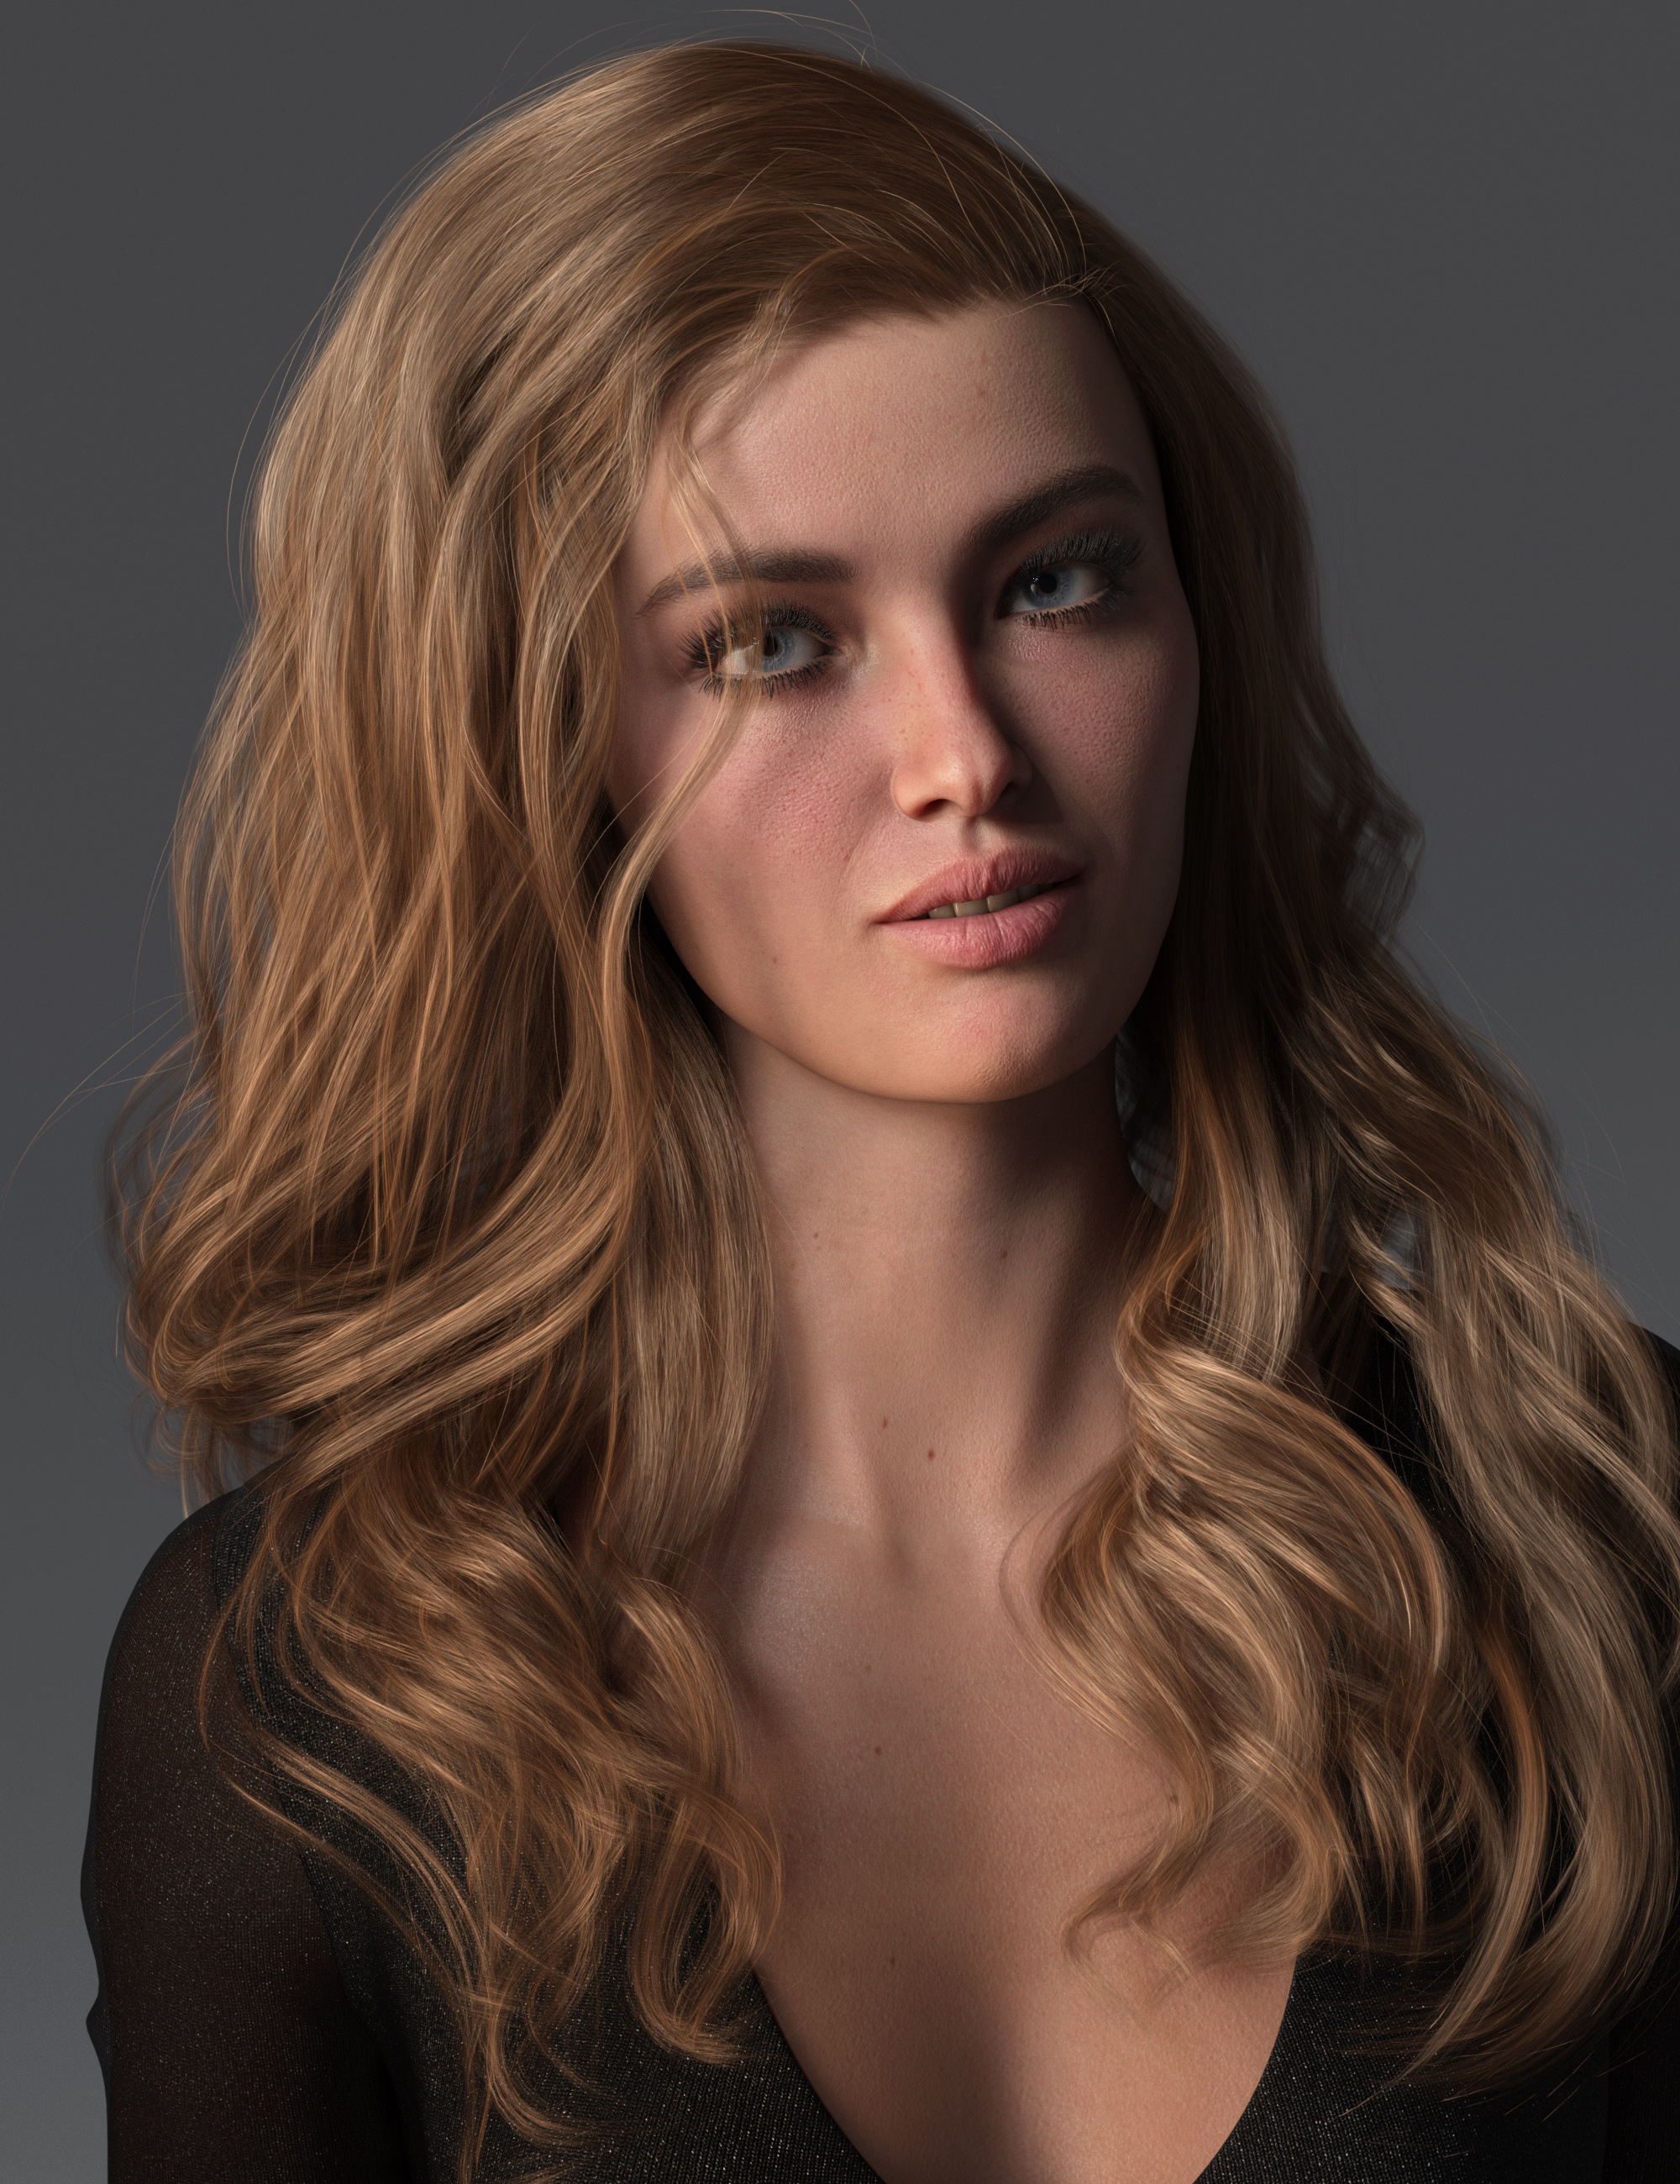 2021-09 Hair for Genesis 8 and 8.1 Females by: outoftouch, 3D Models by Daz 3D